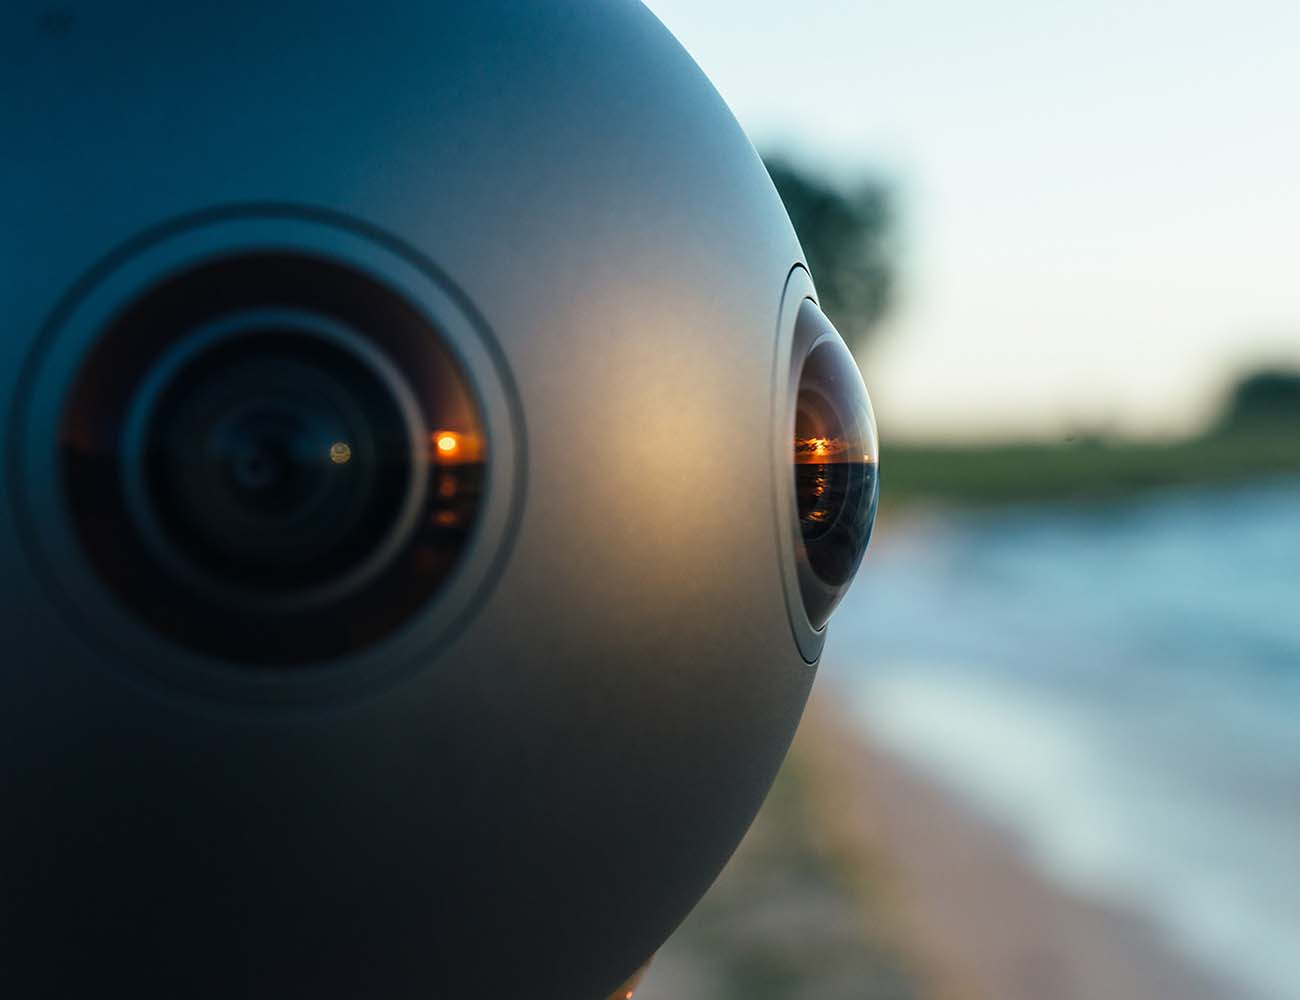 Nokia+Ozo+%26%238211%3B+Virtual+Reality+Camera